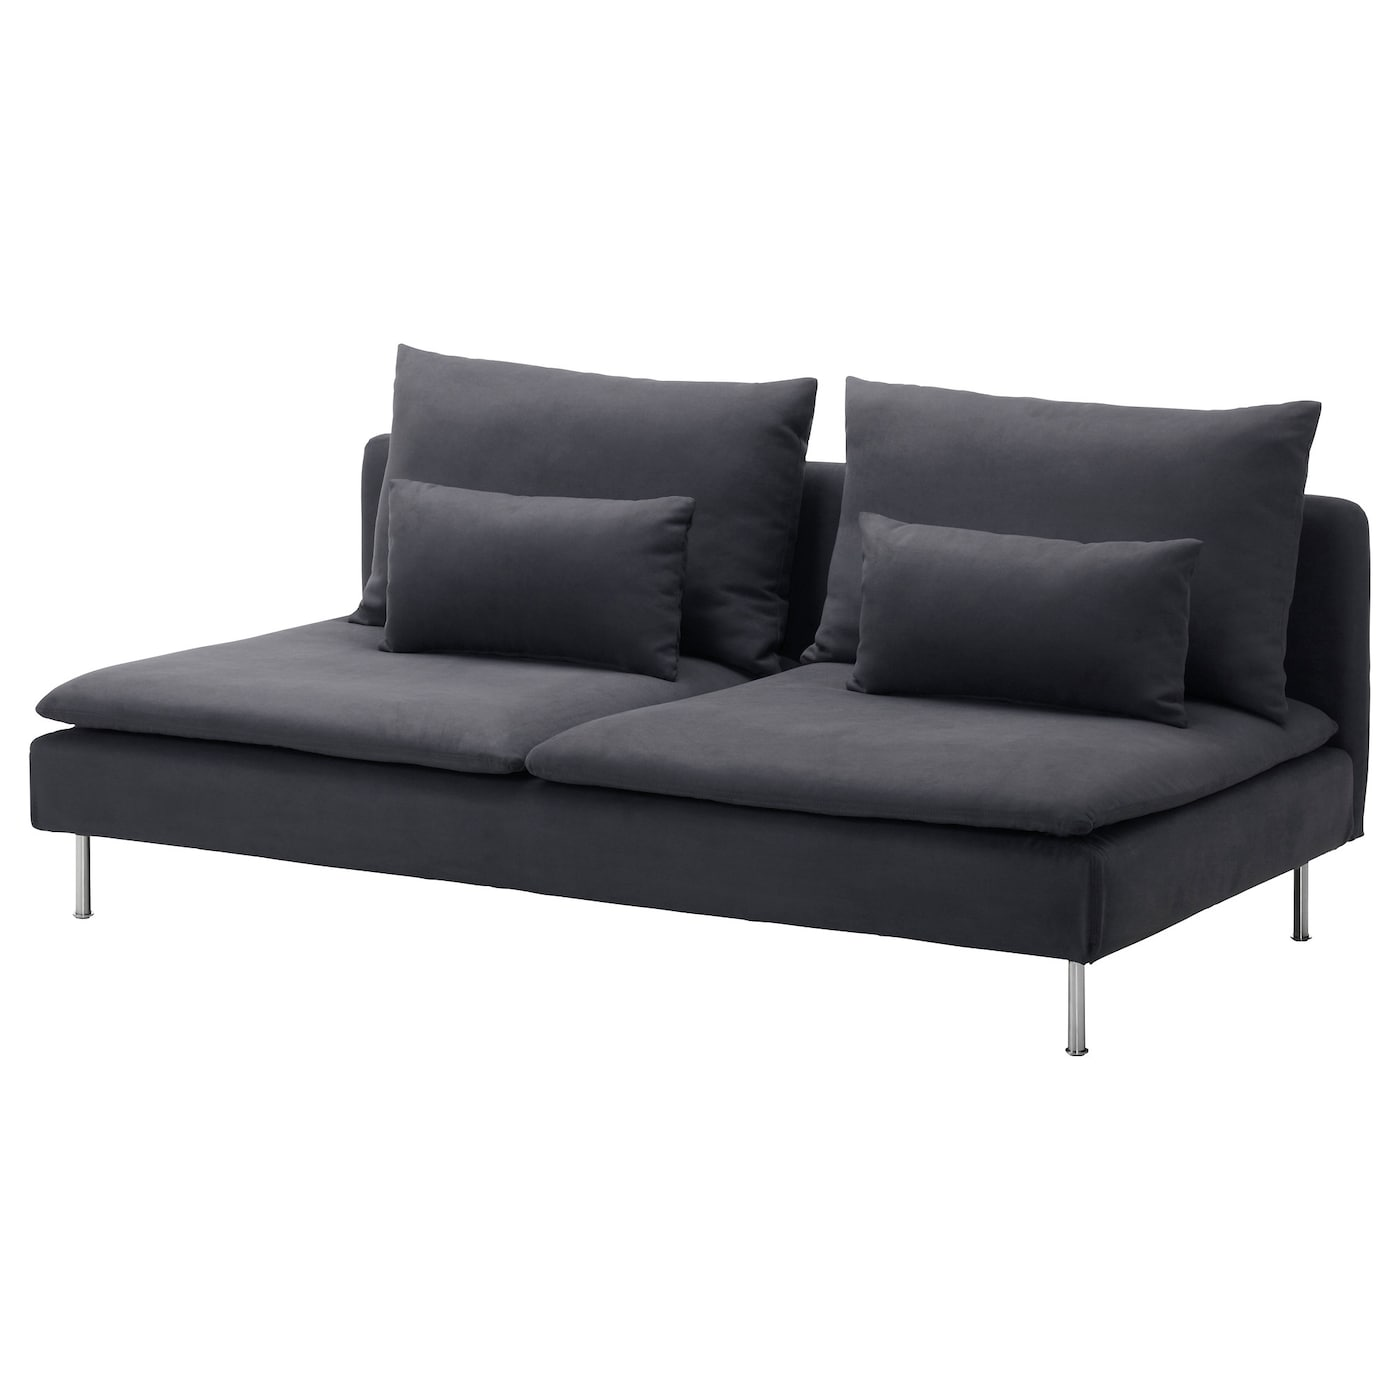 IKEA SÖDERHAMN three-seat section Hardwearing microfibre which is soft and smooth.